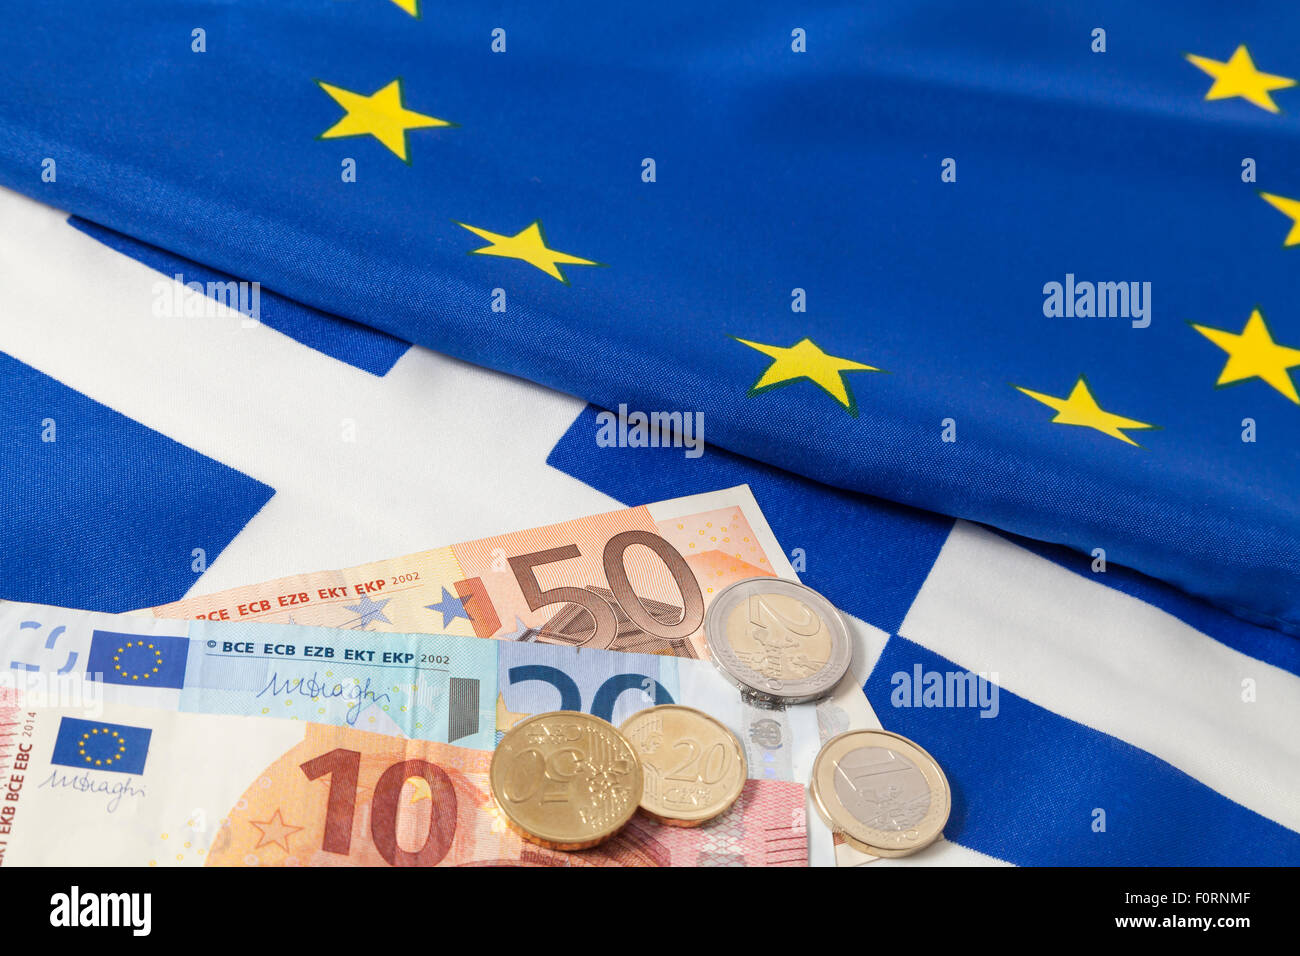 EU and greek flag and Euro cash - Stock Image